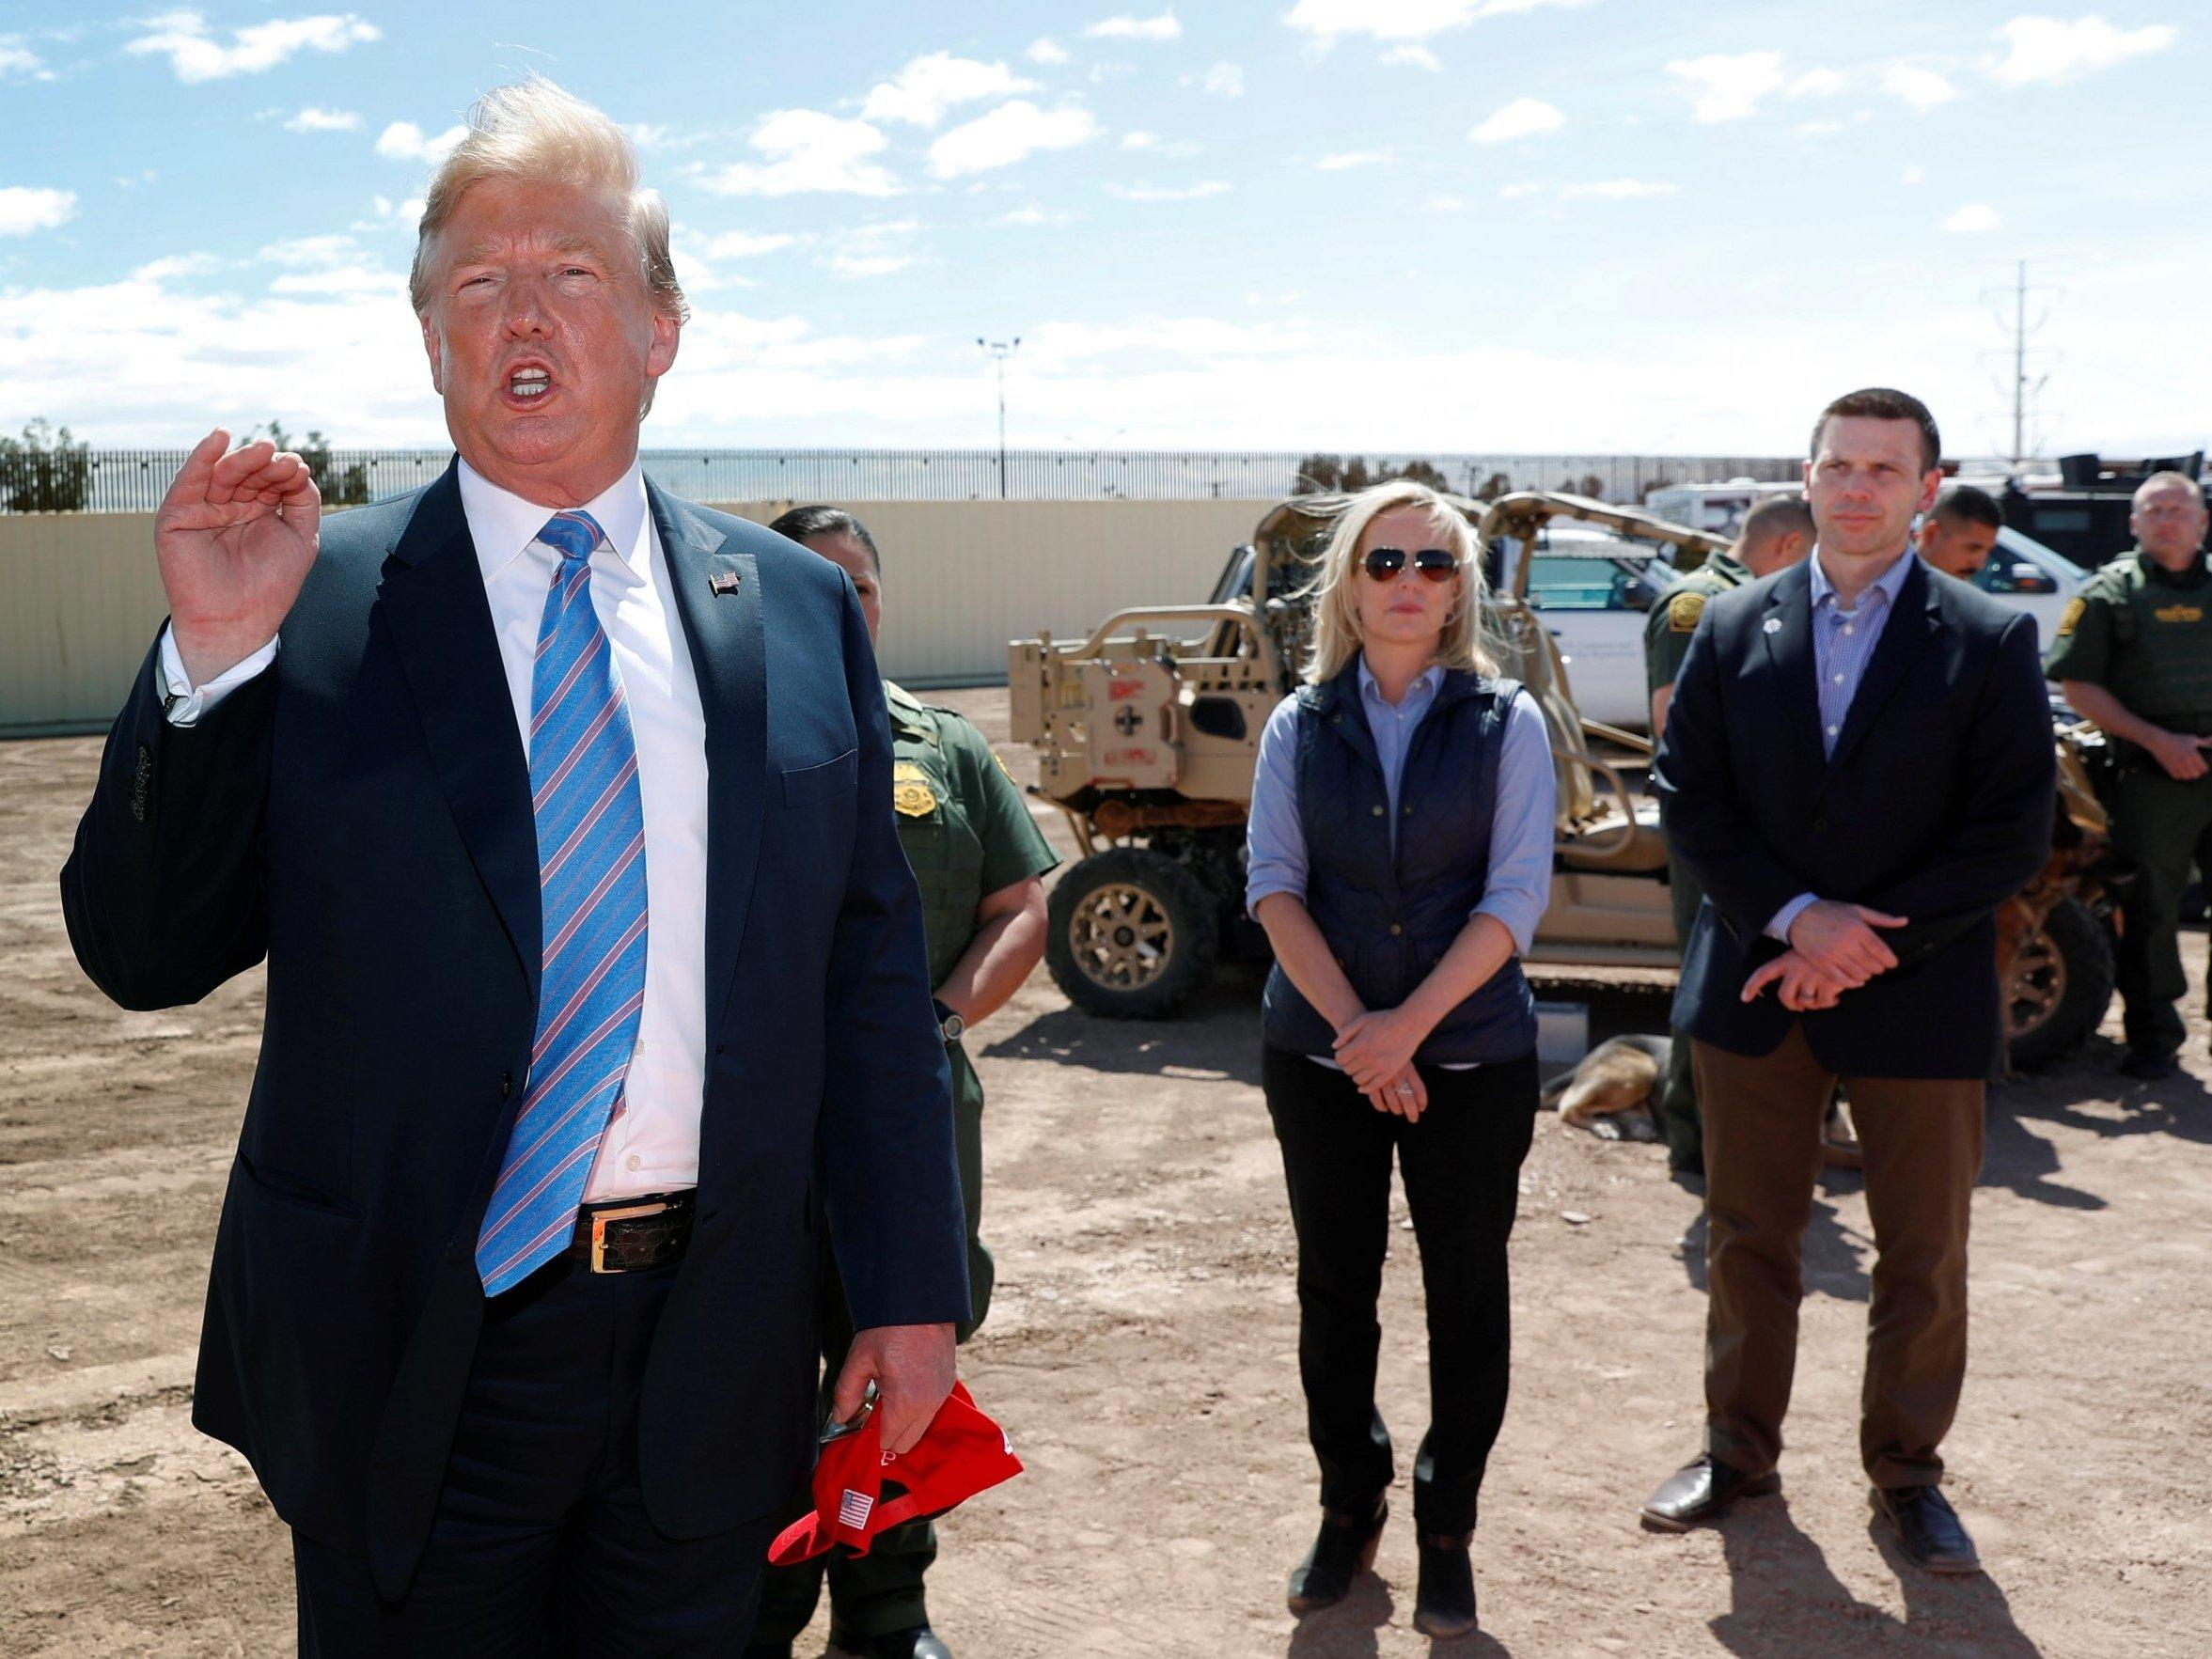 """Acting US defence secretary Patrick Shanahan has approved the transfer of $1.5bn of funds to pay for Donald Trump's border wall. The funds for the border wall, which was one of the president's best known campaign promises, are being pulled from an account meant for Afghan security forces in a sum of $604m, according to a report from Reuters. The US delegated $4.9bn in support of the forces in 2018.Some were concerned a loss of funds may weaken the Afghan forces fight against the Taliban, but a US official claims that the government found savings in contracts.""""The funds were drawn from a variety of sources, including cost savings, programmatic changes and revised requirements, and therefore will have minimal impact on force readiness."""" Mr Shanahan said in a statement. The transfer of funds was met with resistance from some democrats, particularly from Dick Durbin of Illinois, who serves on the appropriations defense subcommittee.Mr Durbin tweeted on Friday: """"Today, the defence department will divert another $1.5bin from our military to the """"big & beautiful"""" border wall. The Pentagon has now reprogrammed 12 times more money to the wall than for repairs at Tyndall AFB, destroyed by Hurricane Michael. We should put troops first!""""Other democrats came out against the transfer, most notably all of the democrats currently on the defence and military construction subcommittees. In a joint letter, the group said """"We are dismayed that the department has chosen to prioritise a political campaign promise over the disaster relief needs of our service members, given the finite reprogramming authority available.""""Reuters reports that the remainder of the money will be sourced from a chemical demilitarisation programme, a retirement account, and funds for Pakistan and Air Force programmes."""